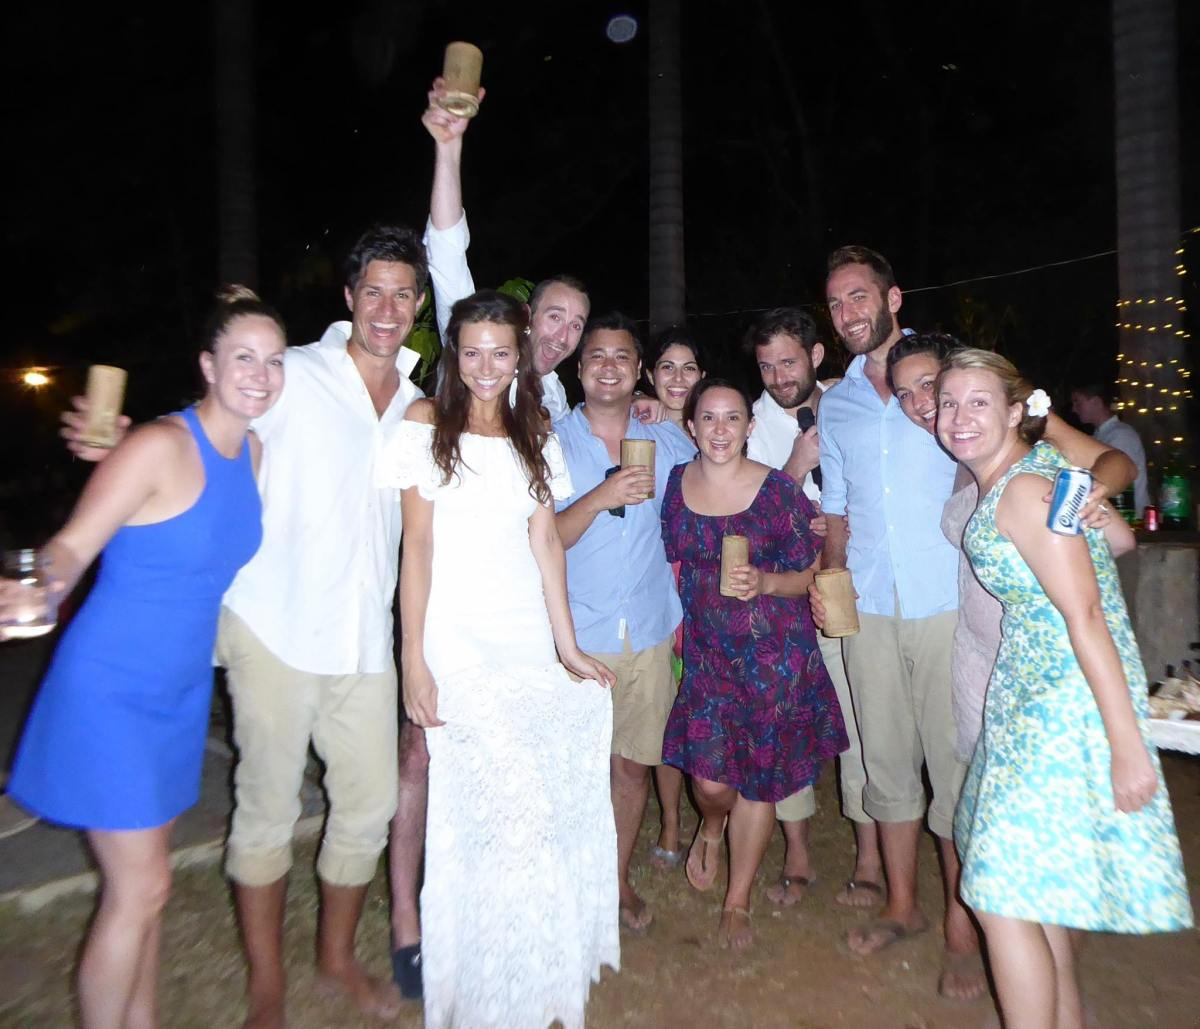 Oksana and Australian friends at the wedding. Costa Rica